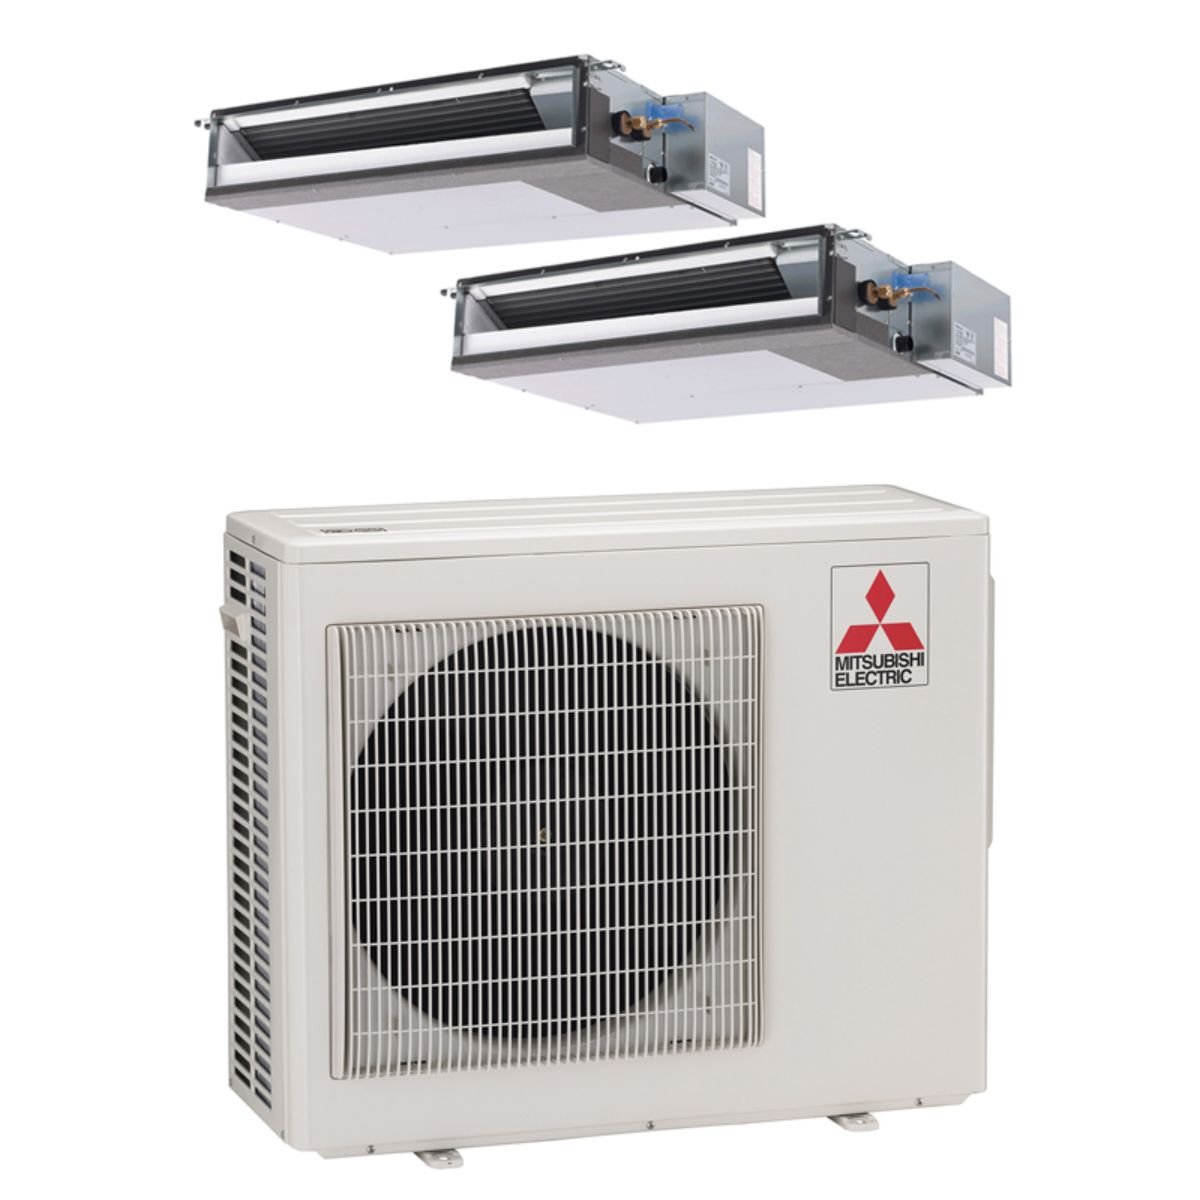 mounted heat p conditioning industries a and asp heavy wall pump inverter heating mitsubishi air